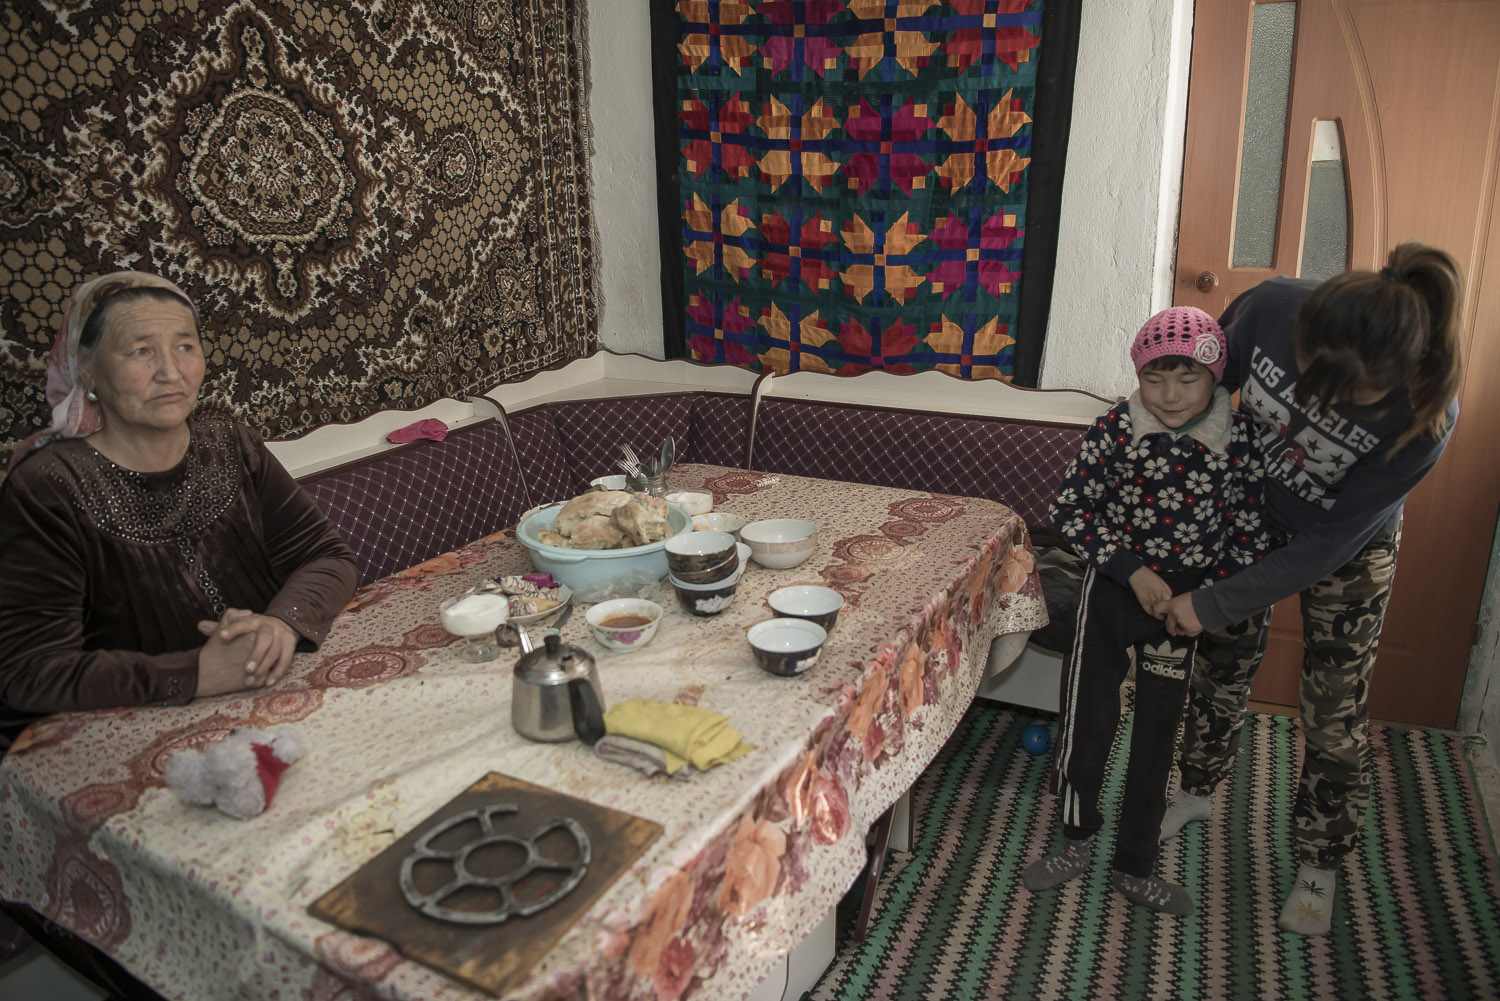 Balychky-family-home-grandparent-carers-migrant-workers-jo-kearney-video-photography.jpg